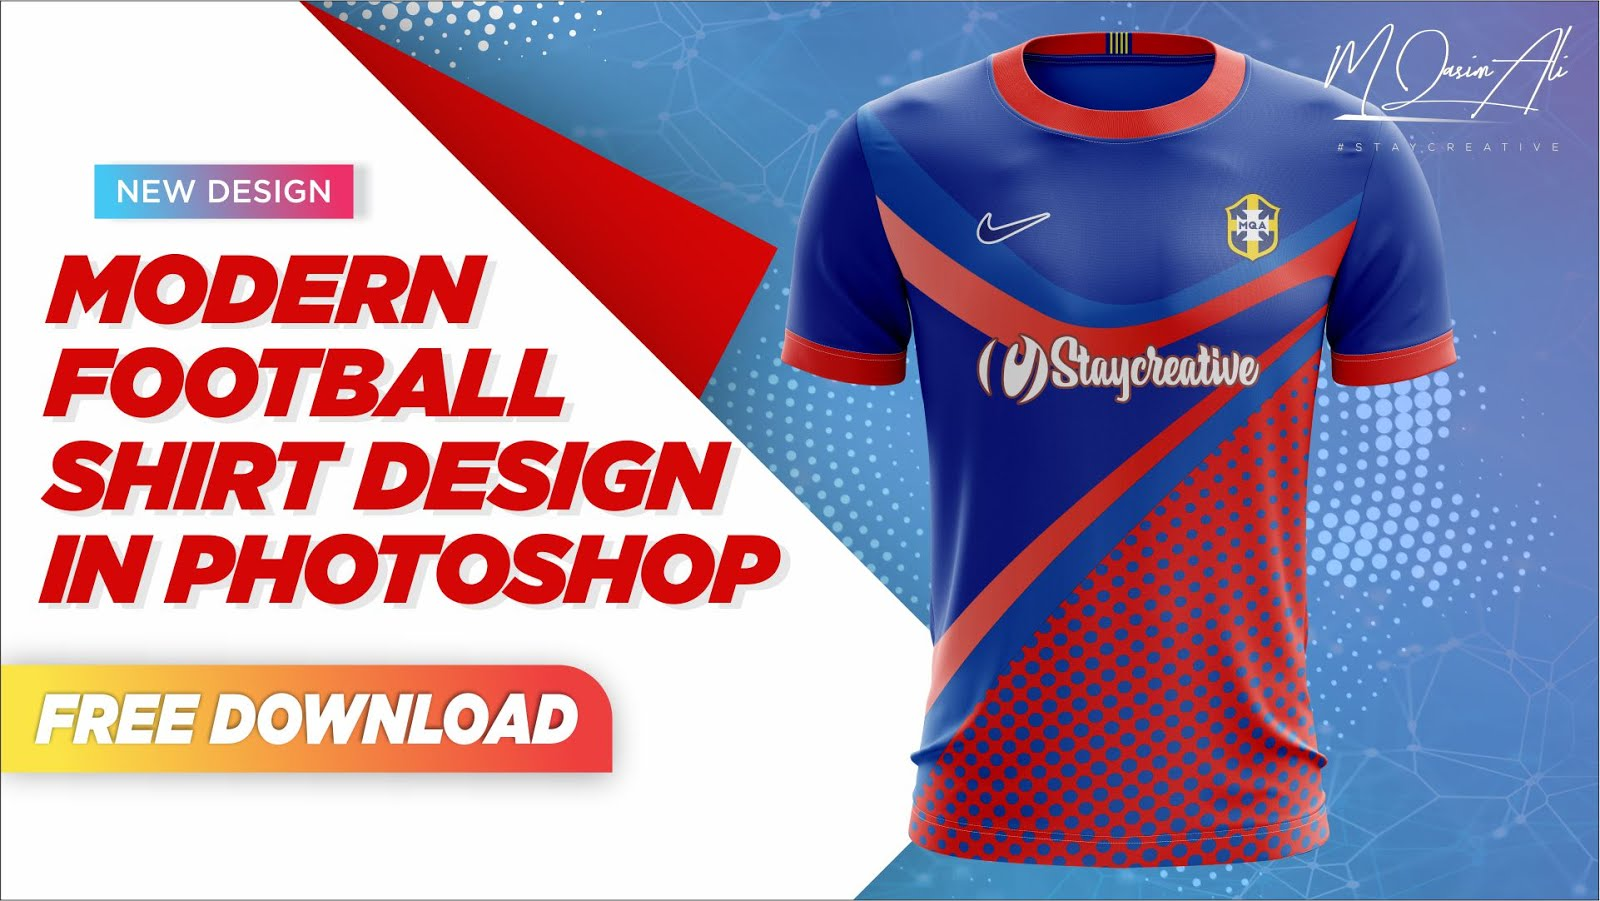 Download Modern Football Shirt Design In Photoshop Free Yellow Images Mockup Download By M Qasim Ali M Qasim Ali Sports Templates For Photoshop PSD Mockup Templates